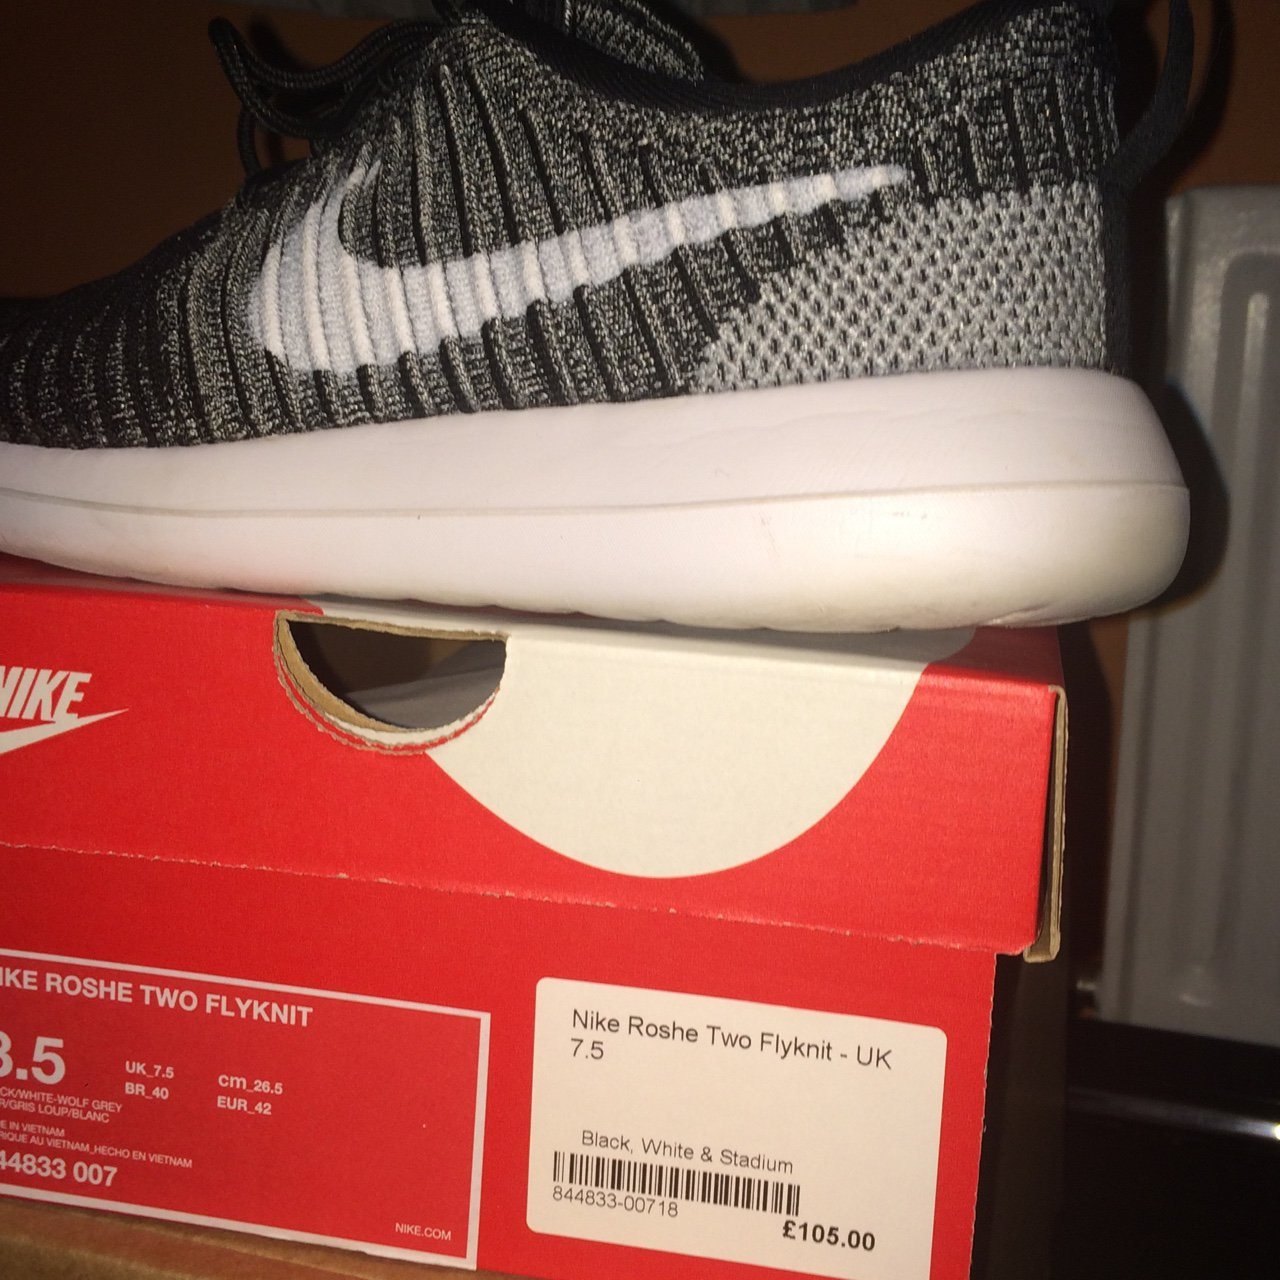 41862ba26a02 Nike Roche Flyknit UK size mens 7.5 (can fit 7 or 8 too). as - Depop